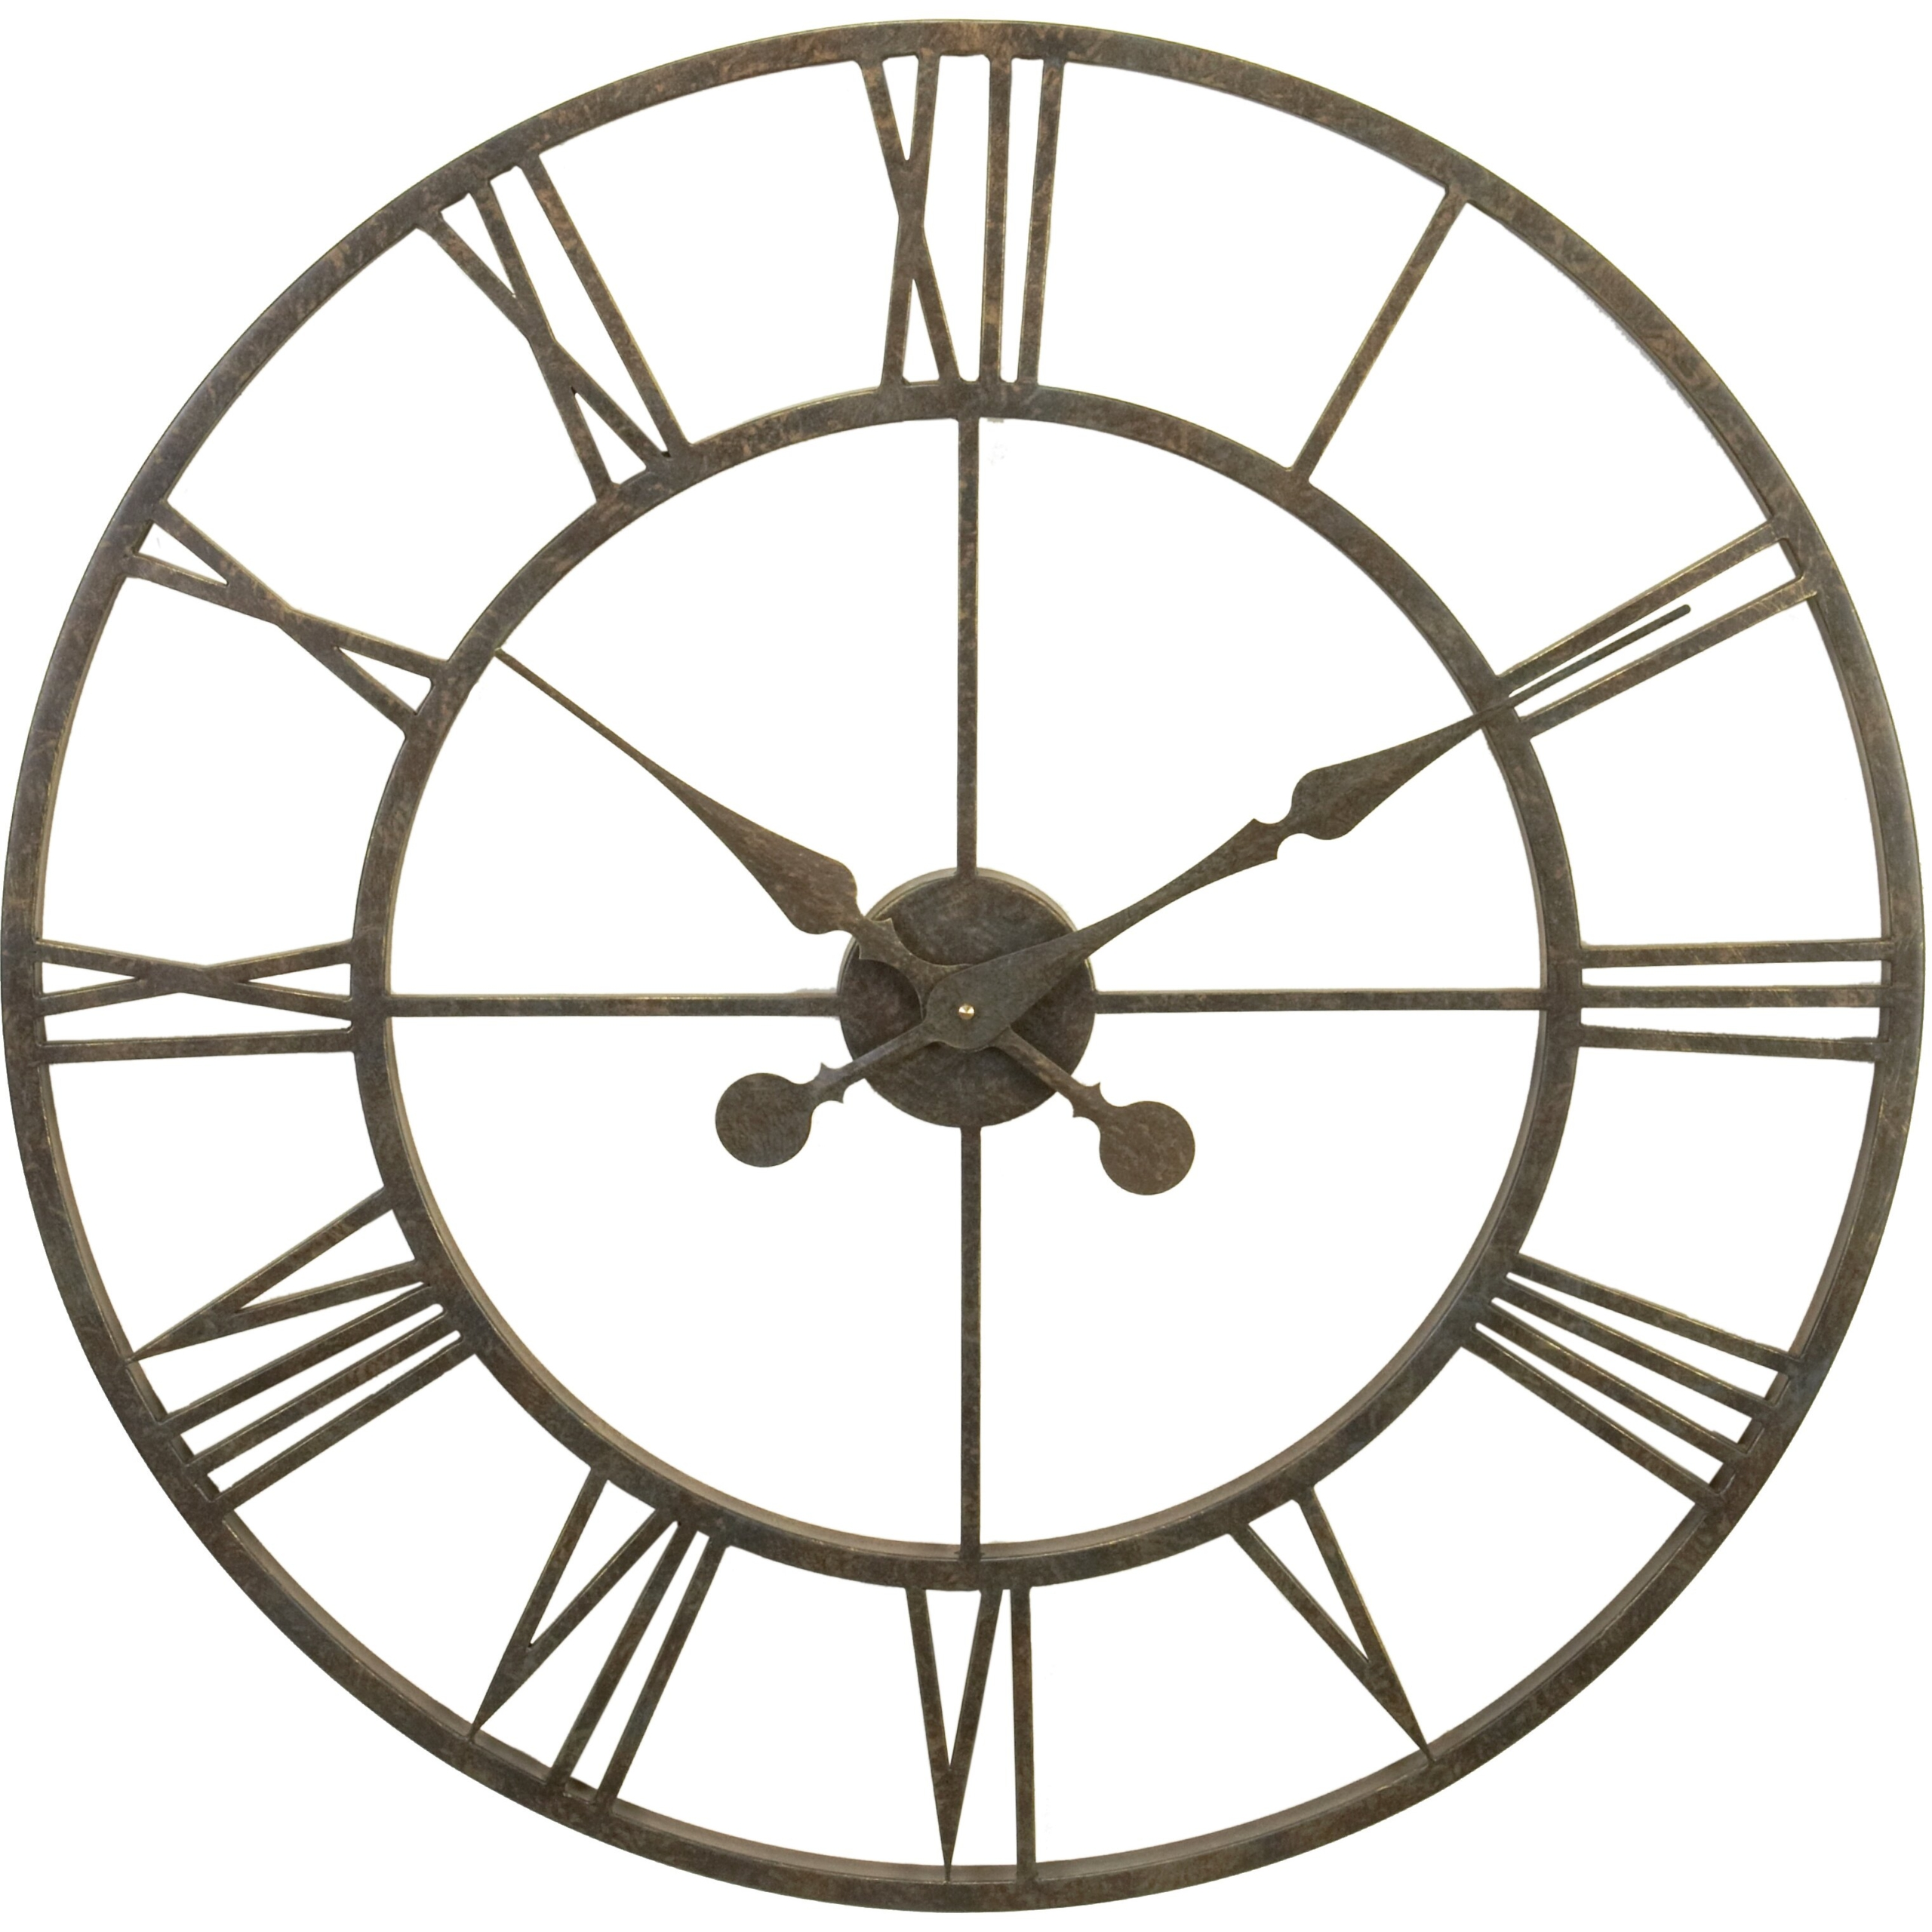 River city clocks indoor metal skeleton tower wall clock